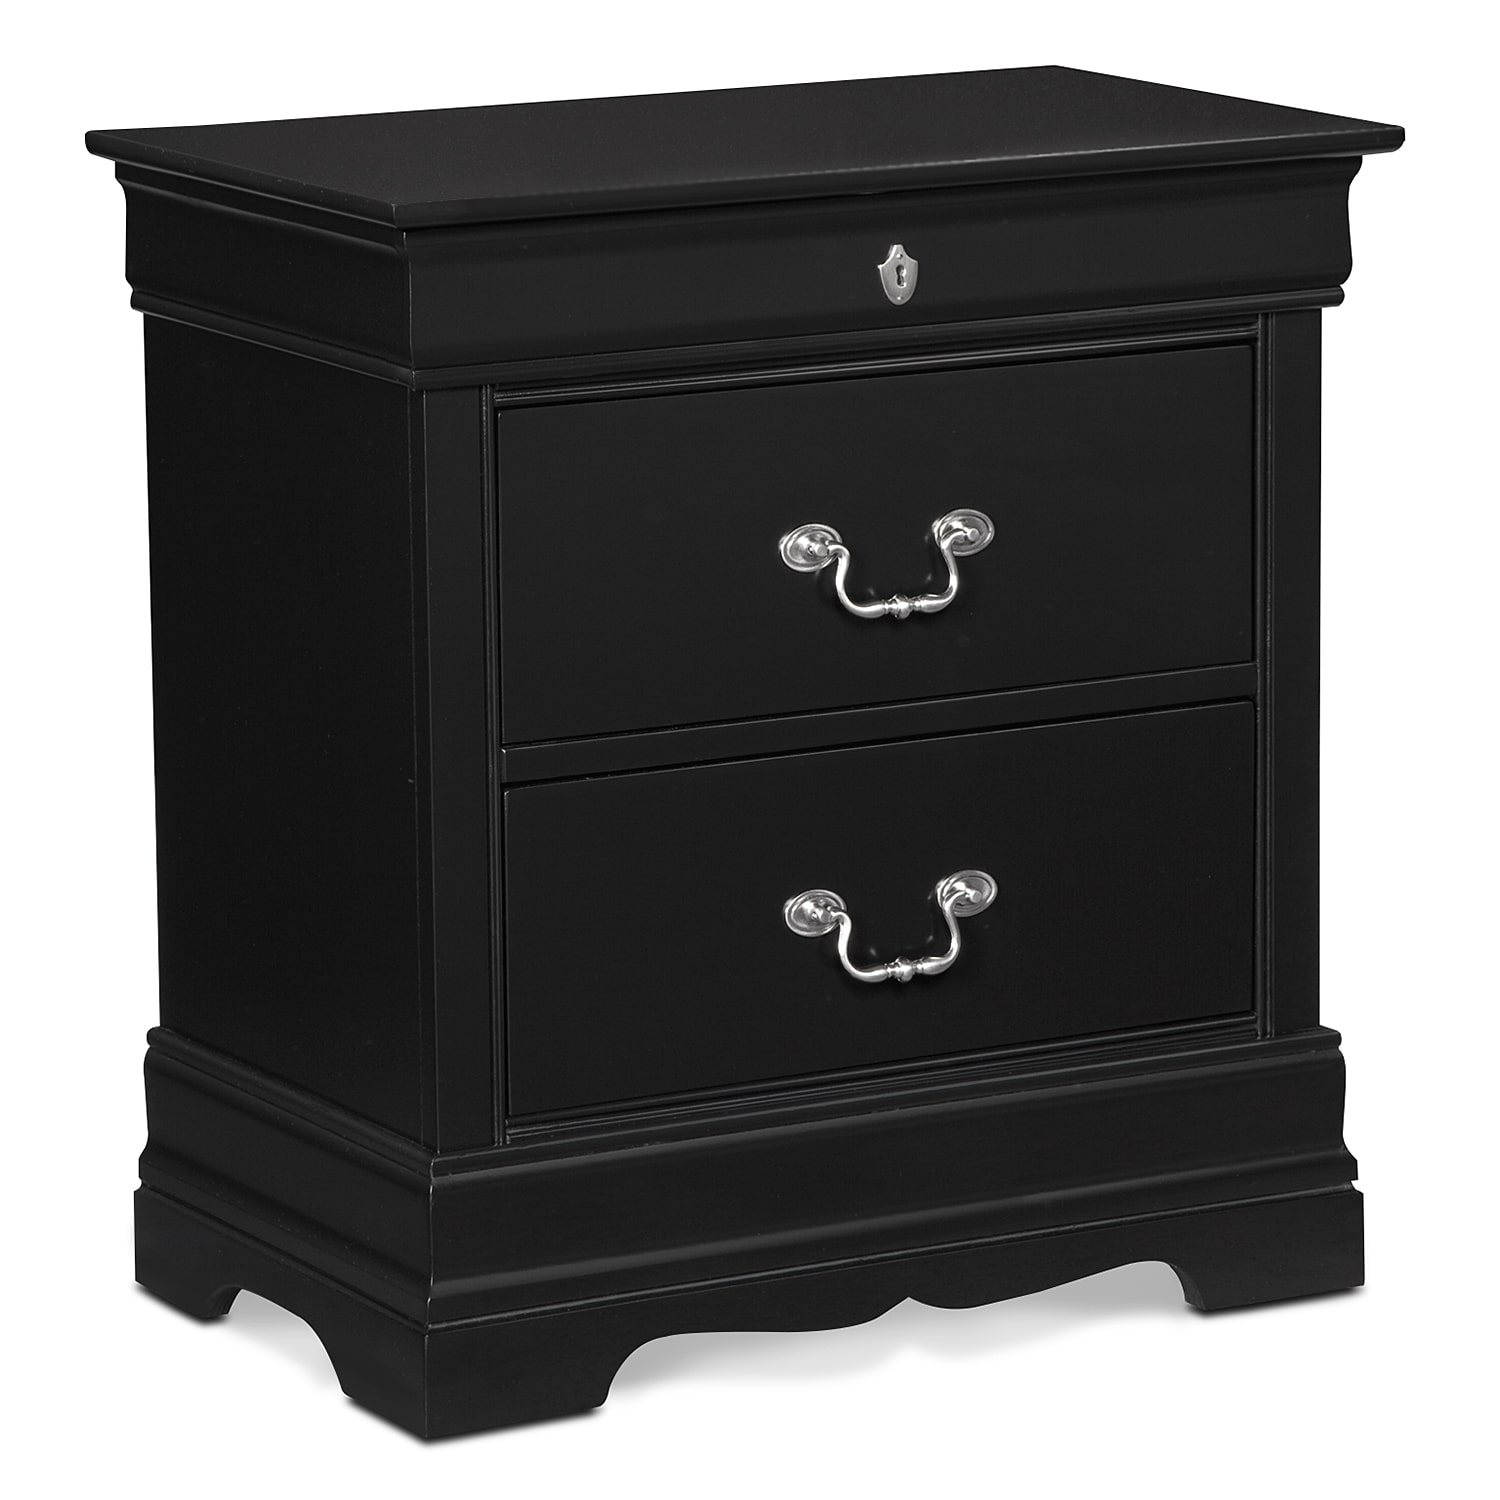 Kids Furniture - Neo Classic Nightstand - Black